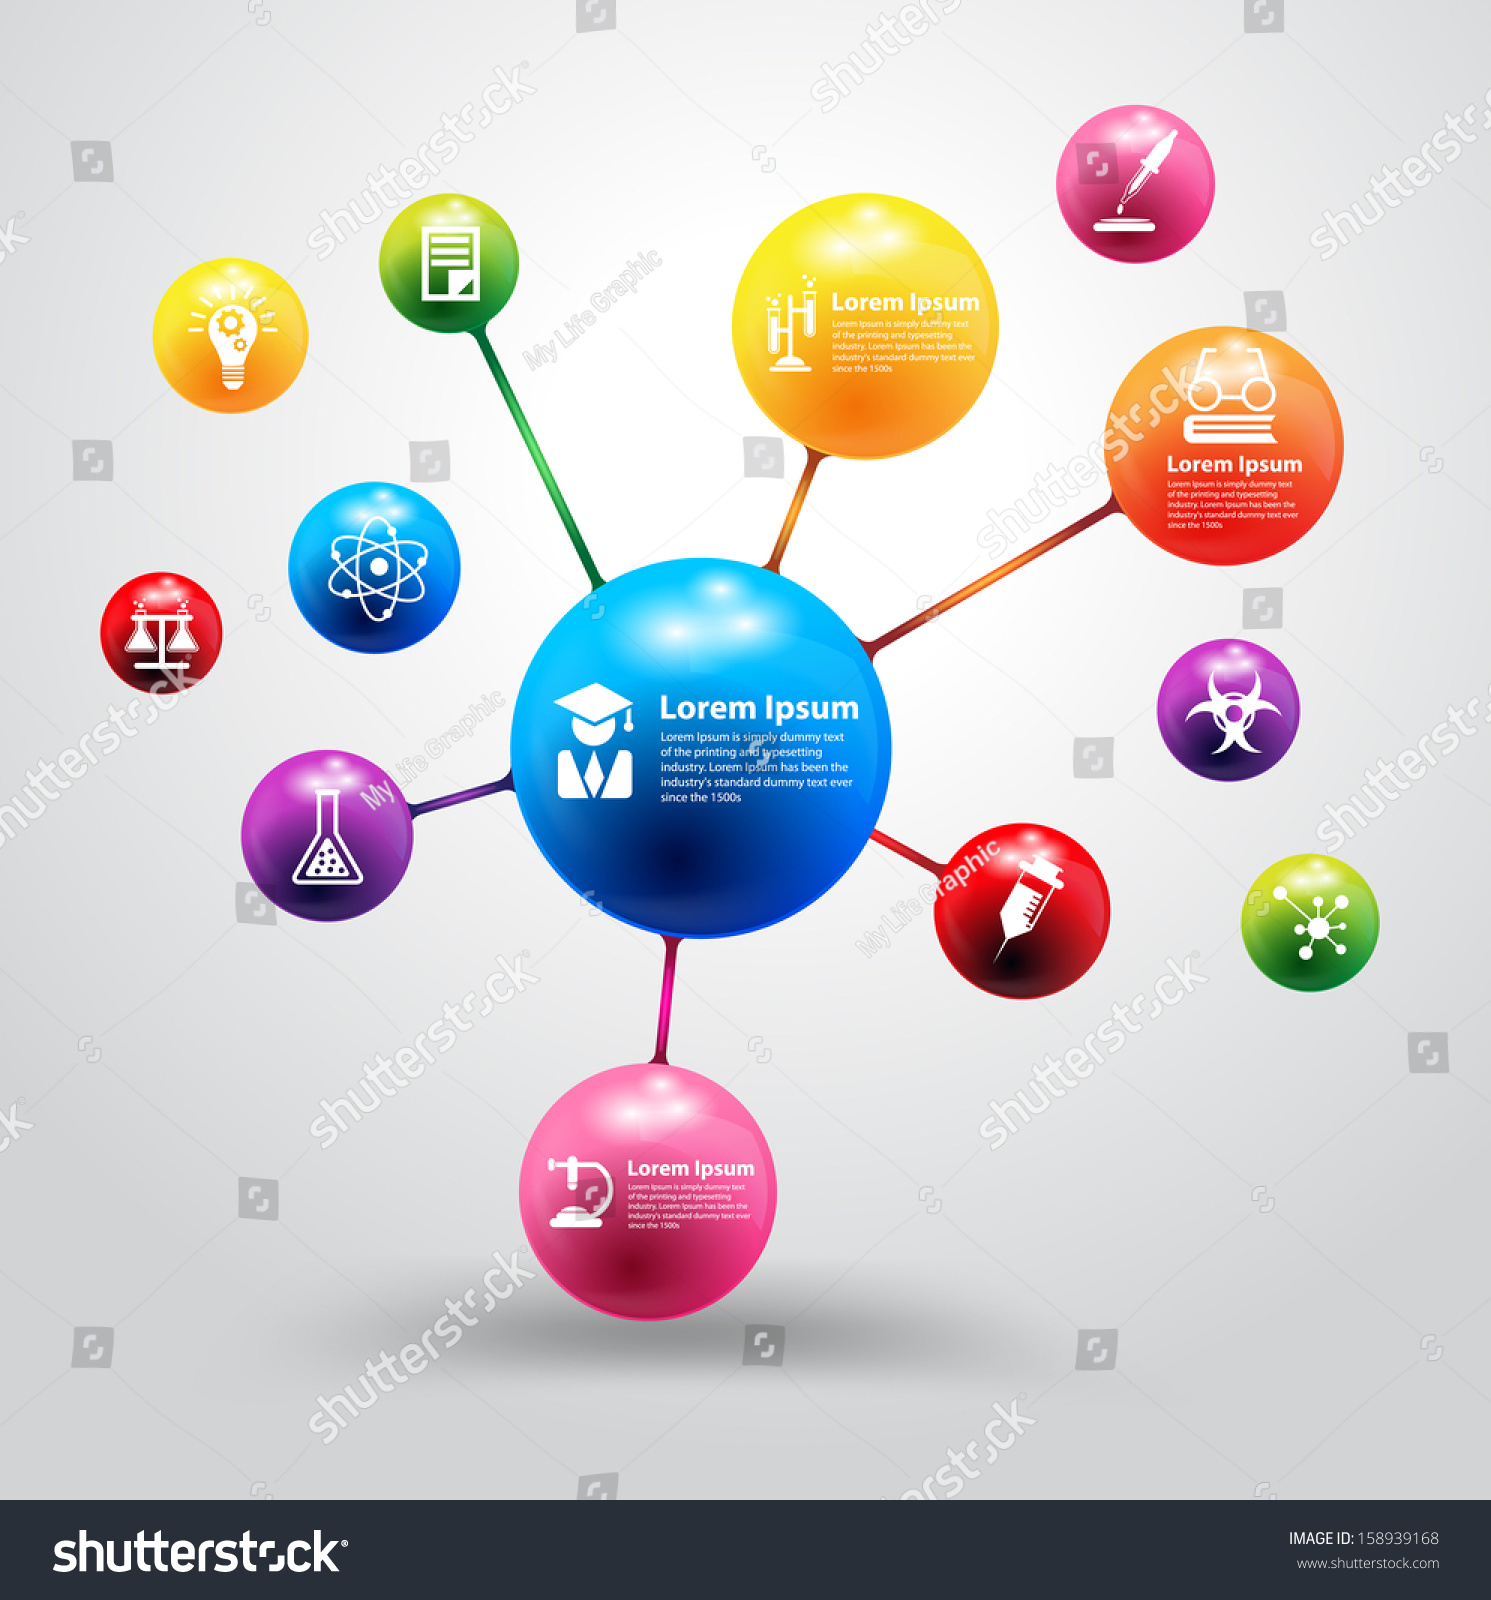 Model atom chemistry science icon education em vetor stock 158939168 model of atom with chemistry and science icon education concept vector illustration modern design template ccuart Gallery